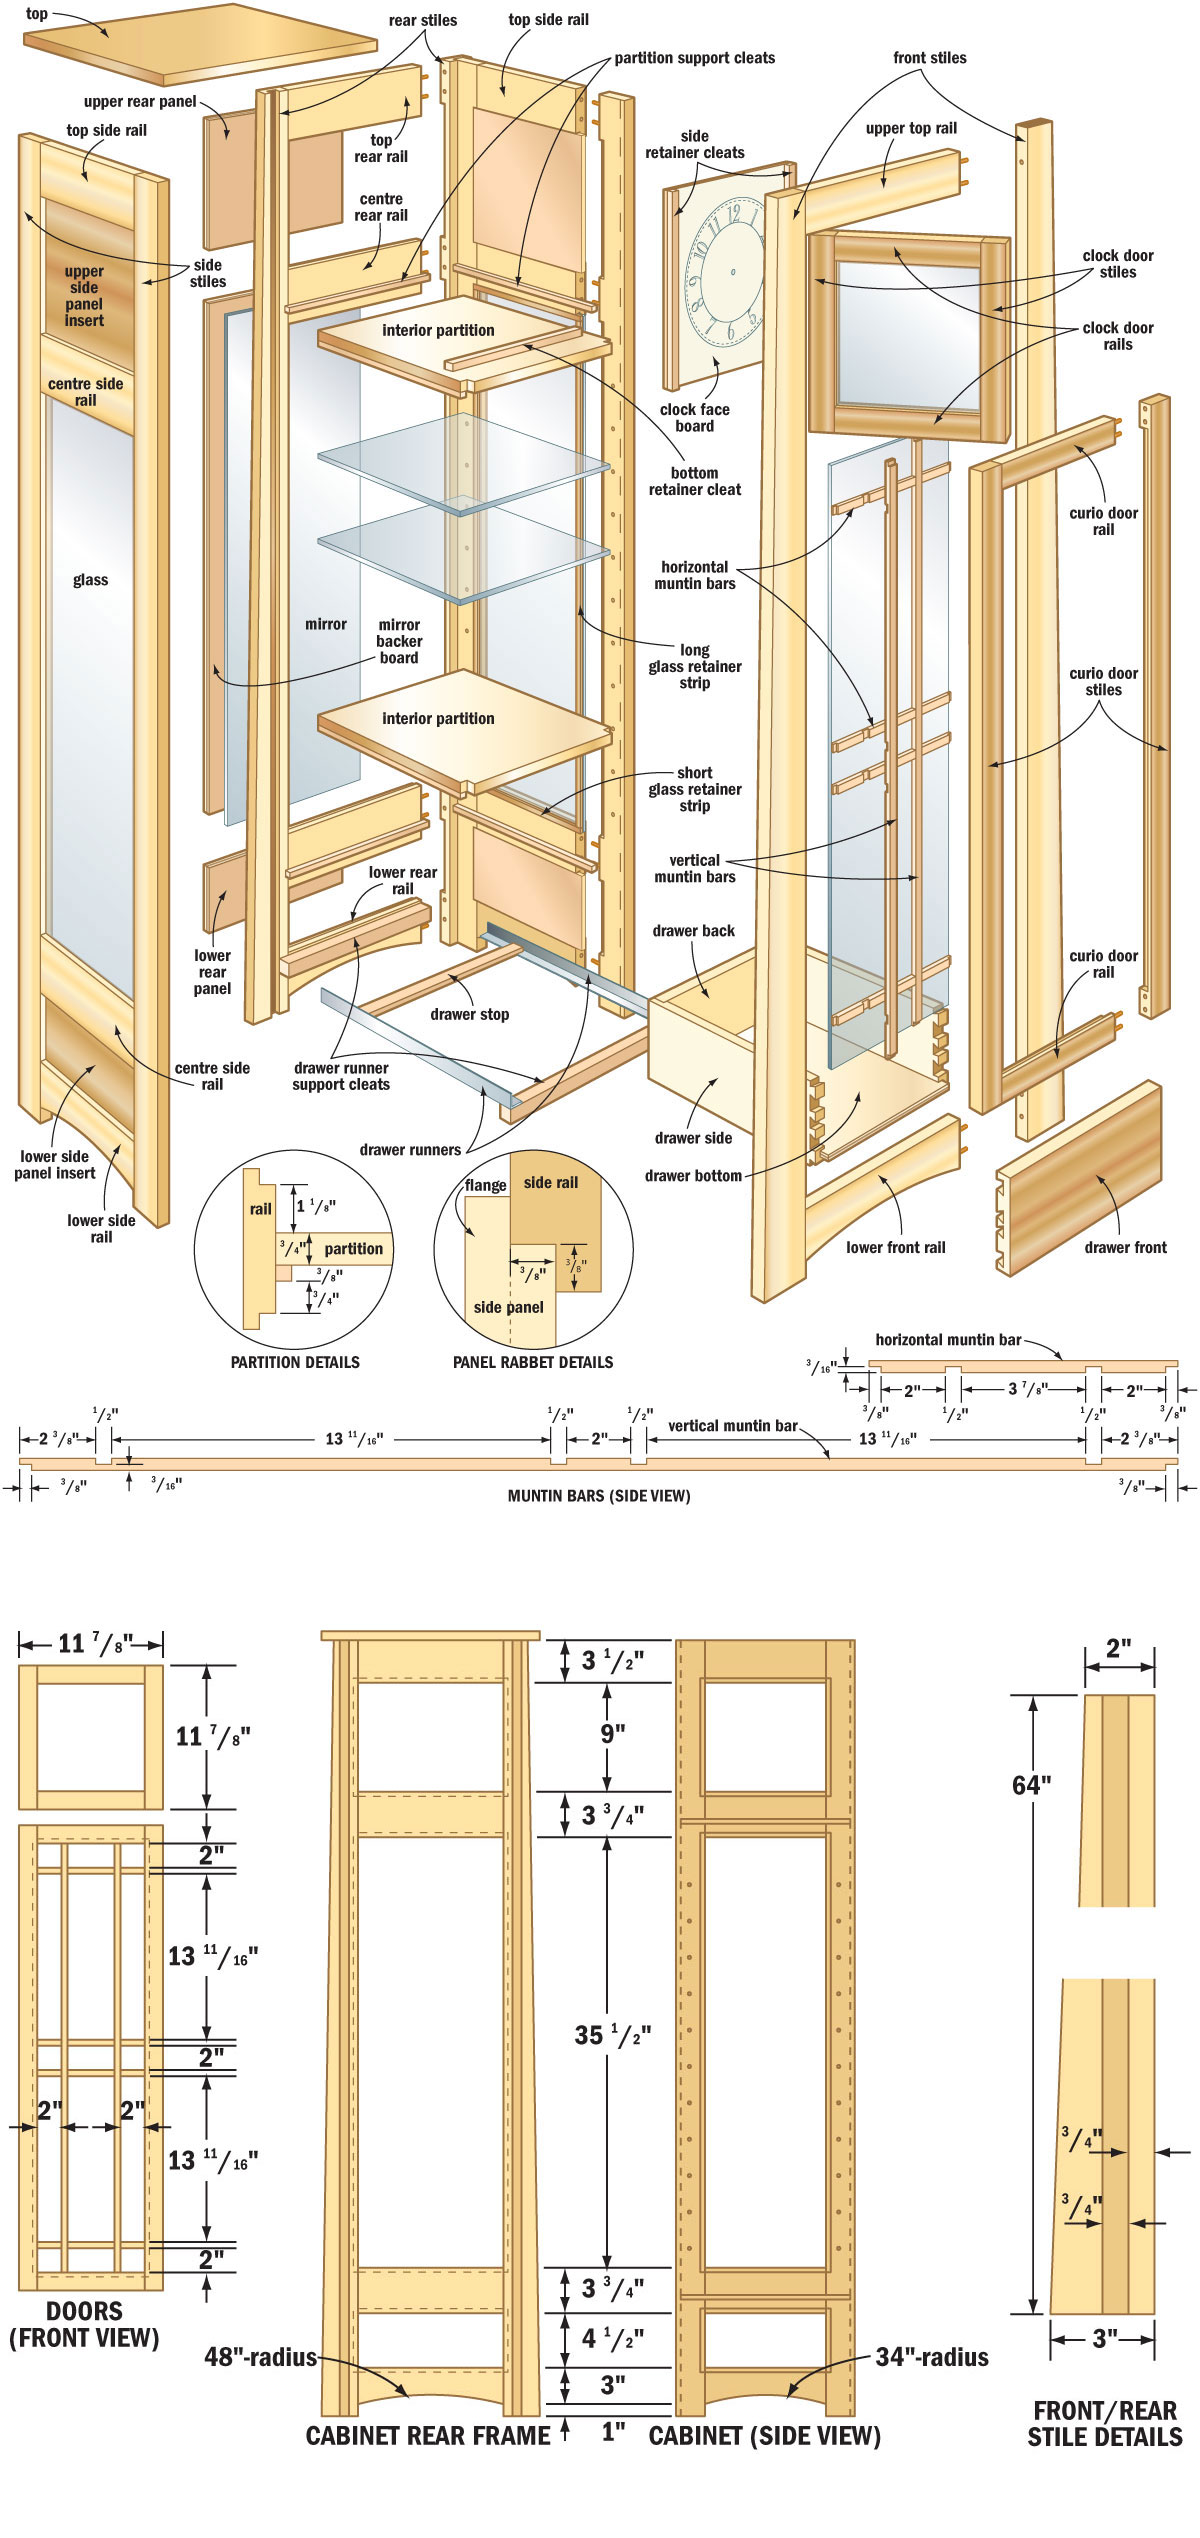 Woodshop Cabinet Plans Clock woodworking plans 2